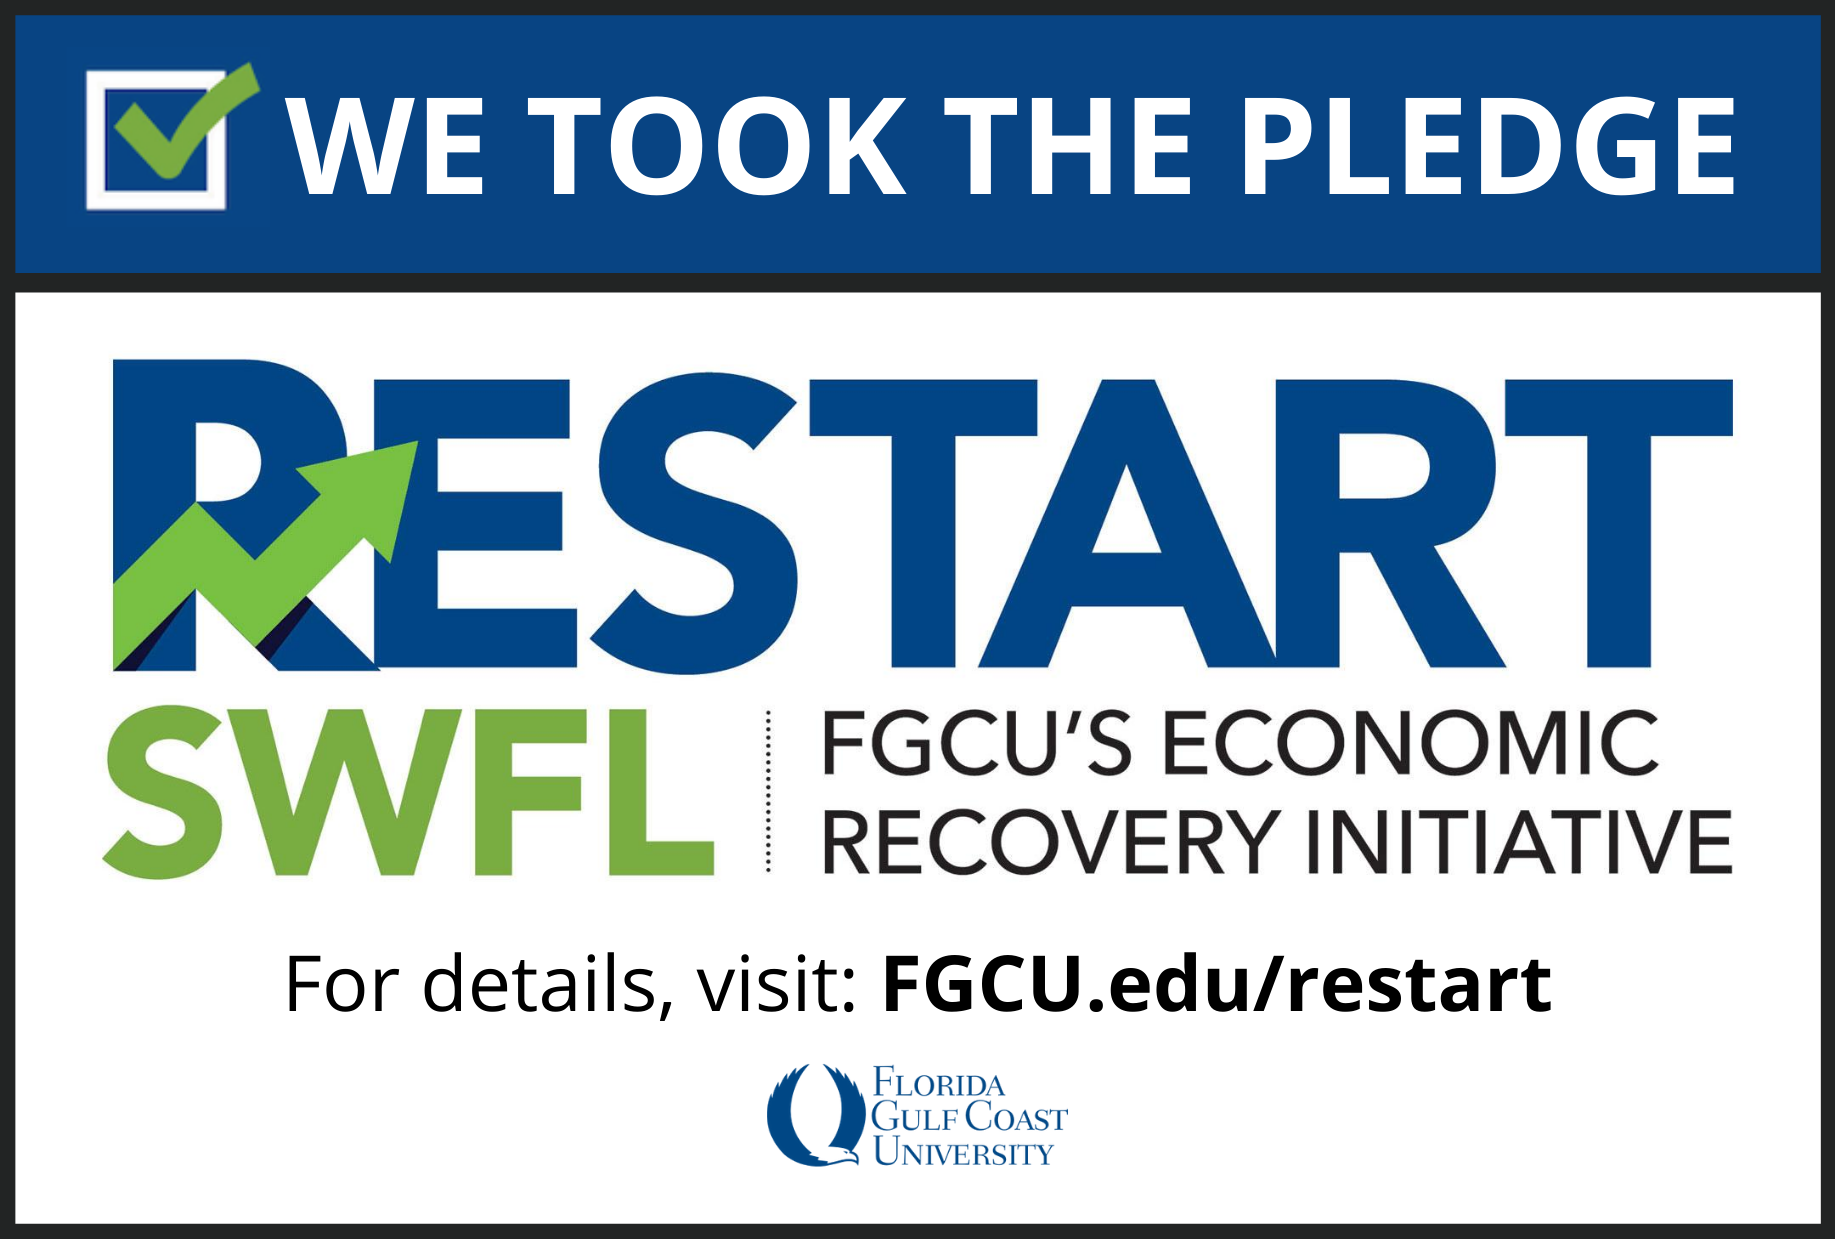 We took the pledge: Restart SWFL